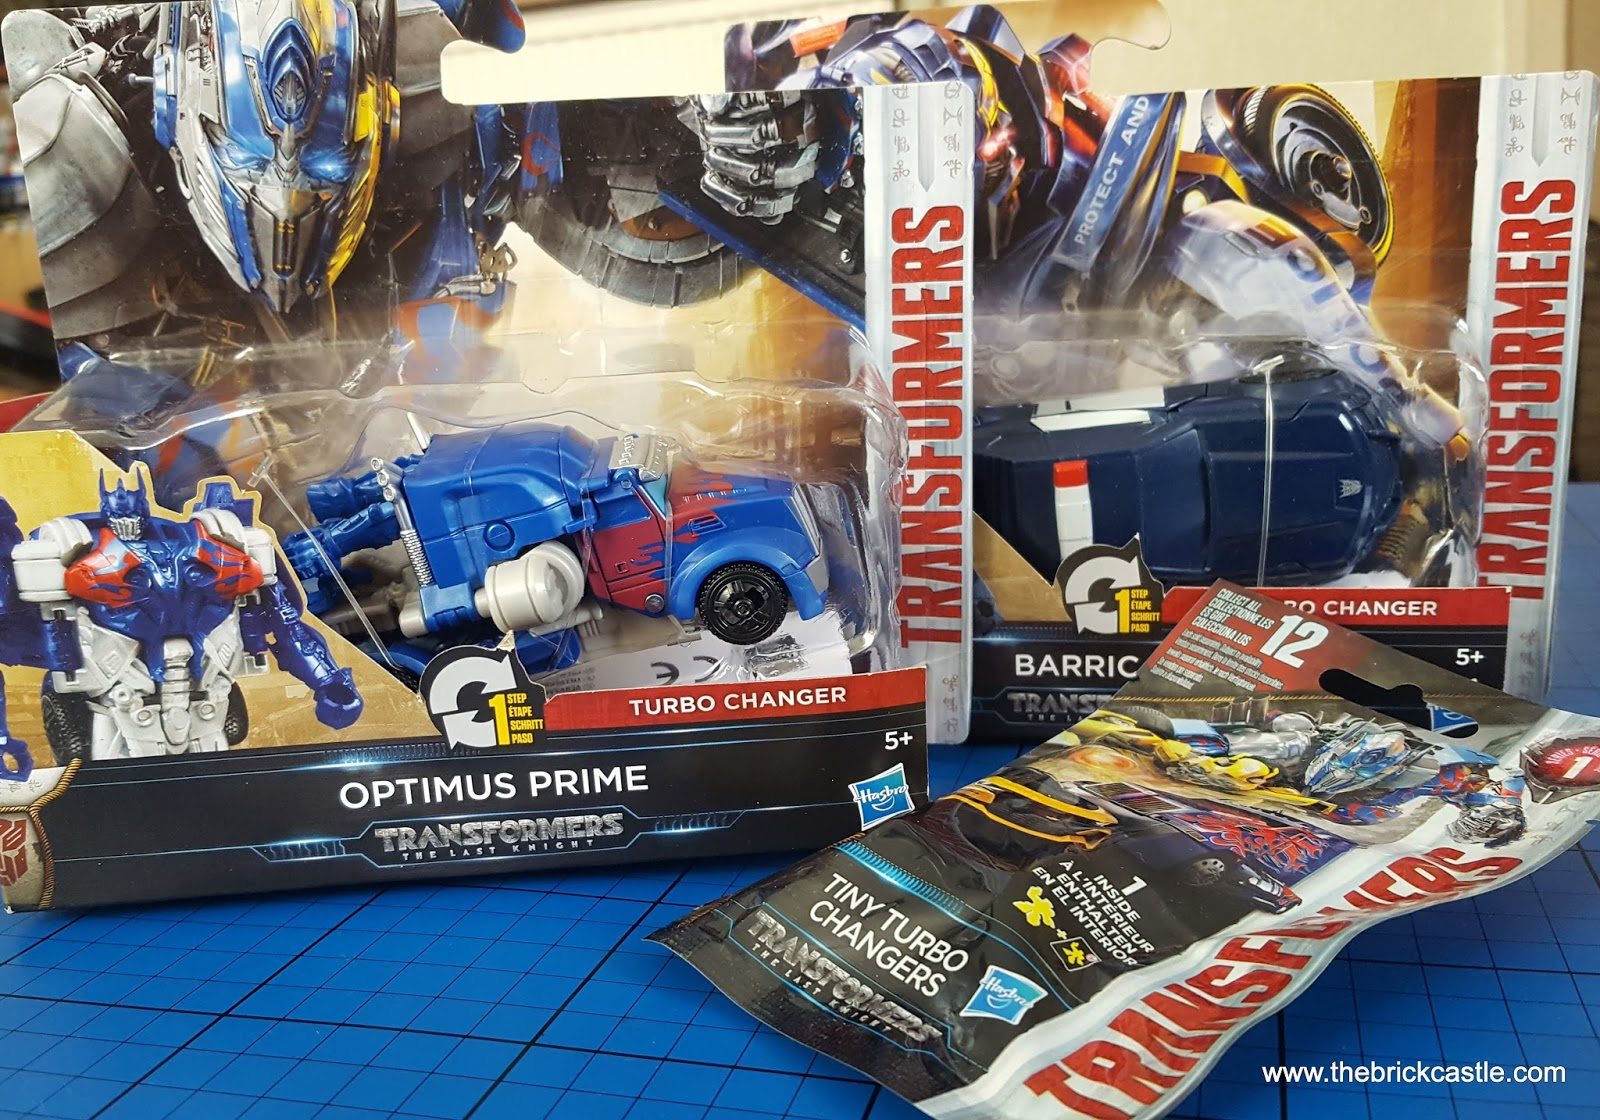 the brick castle hasbro transformers 1 step turbo changers toy review. Black Bedroom Furniture Sets. Home Design Ideas